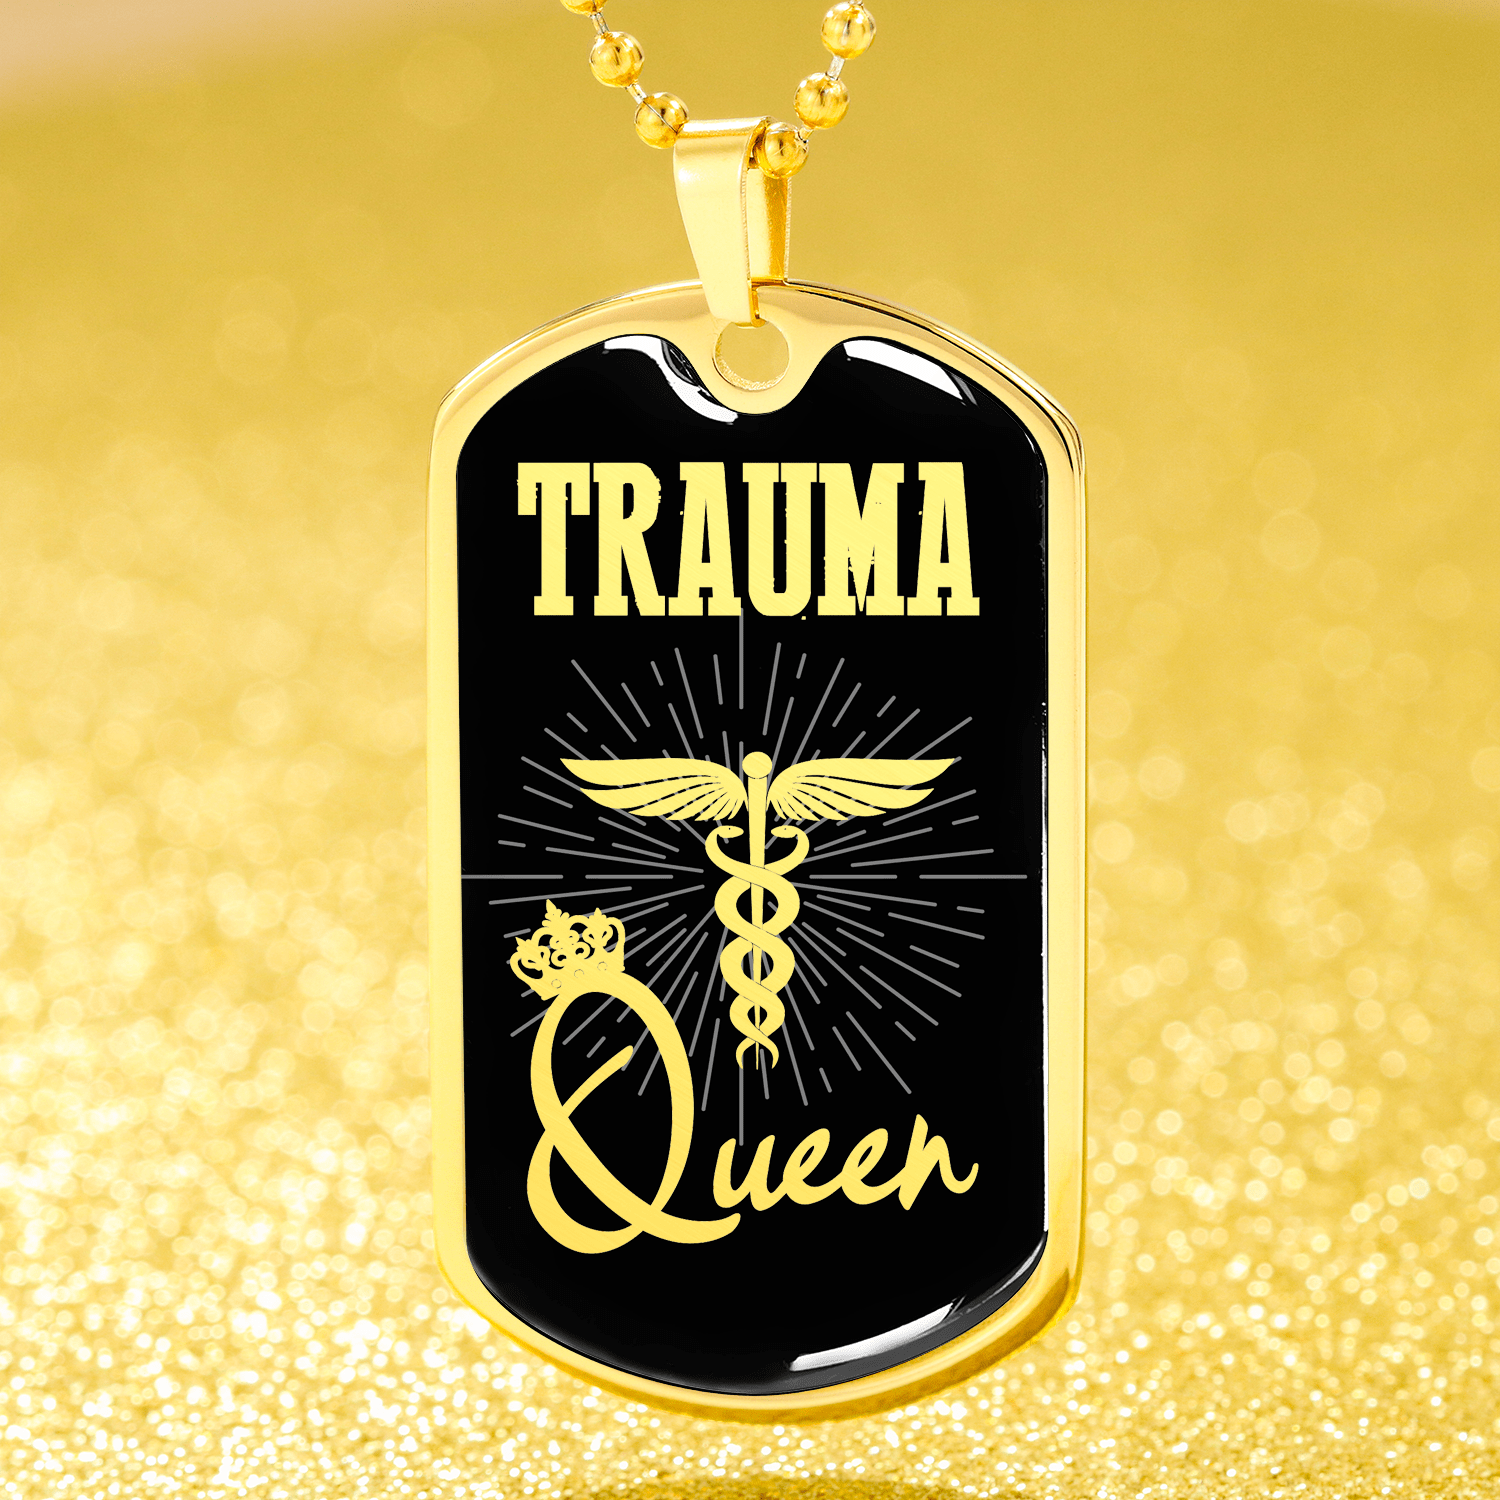 "Trauma Queen Paramedic Nurse Dog Tag Stainless Steel or 18k Gold Finish 24"" Ball Chain Express Your Love Gifts"